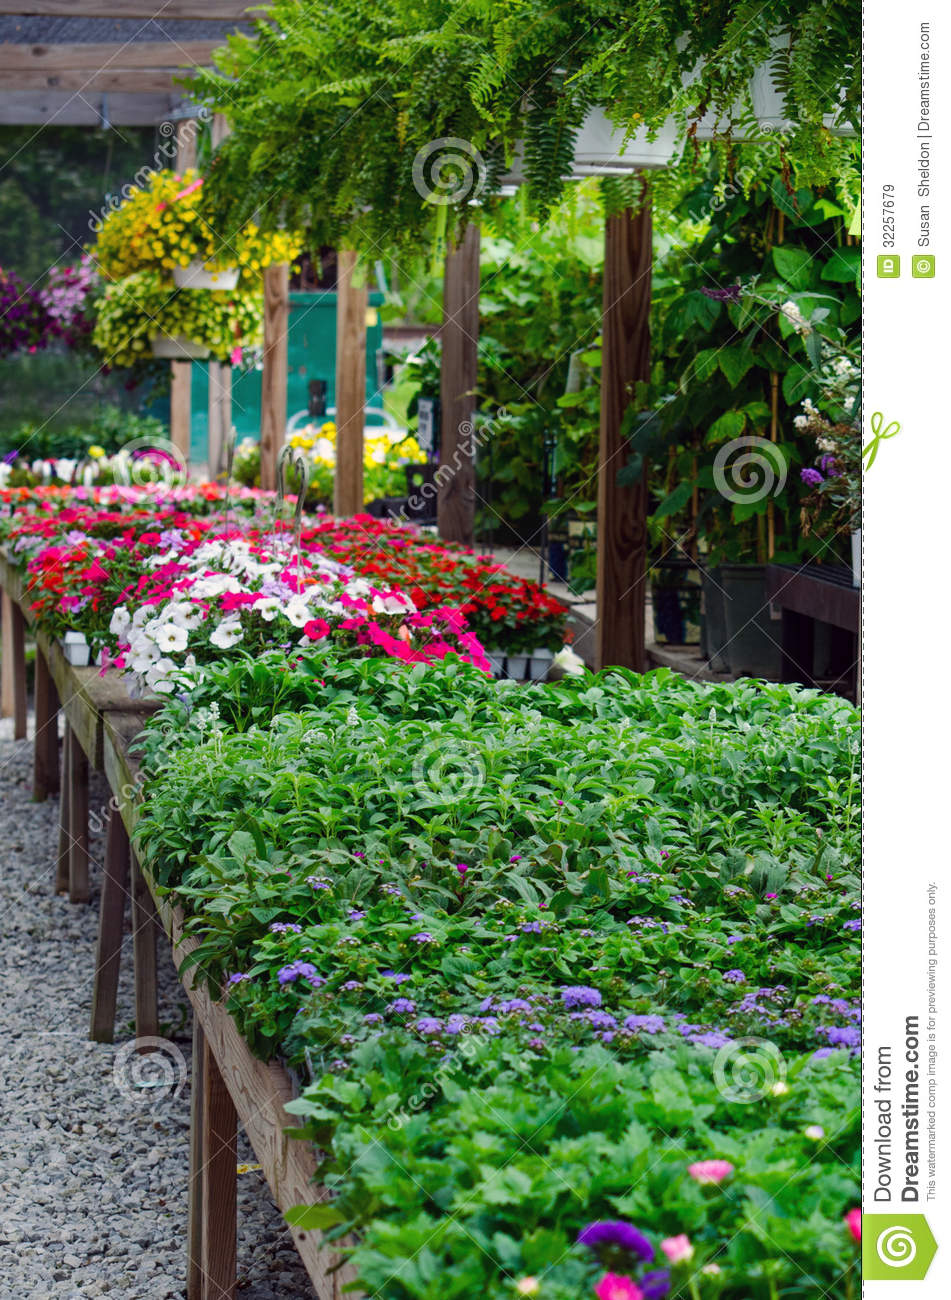 Plants and flowers for sale royalty free stock images for Plants for sale